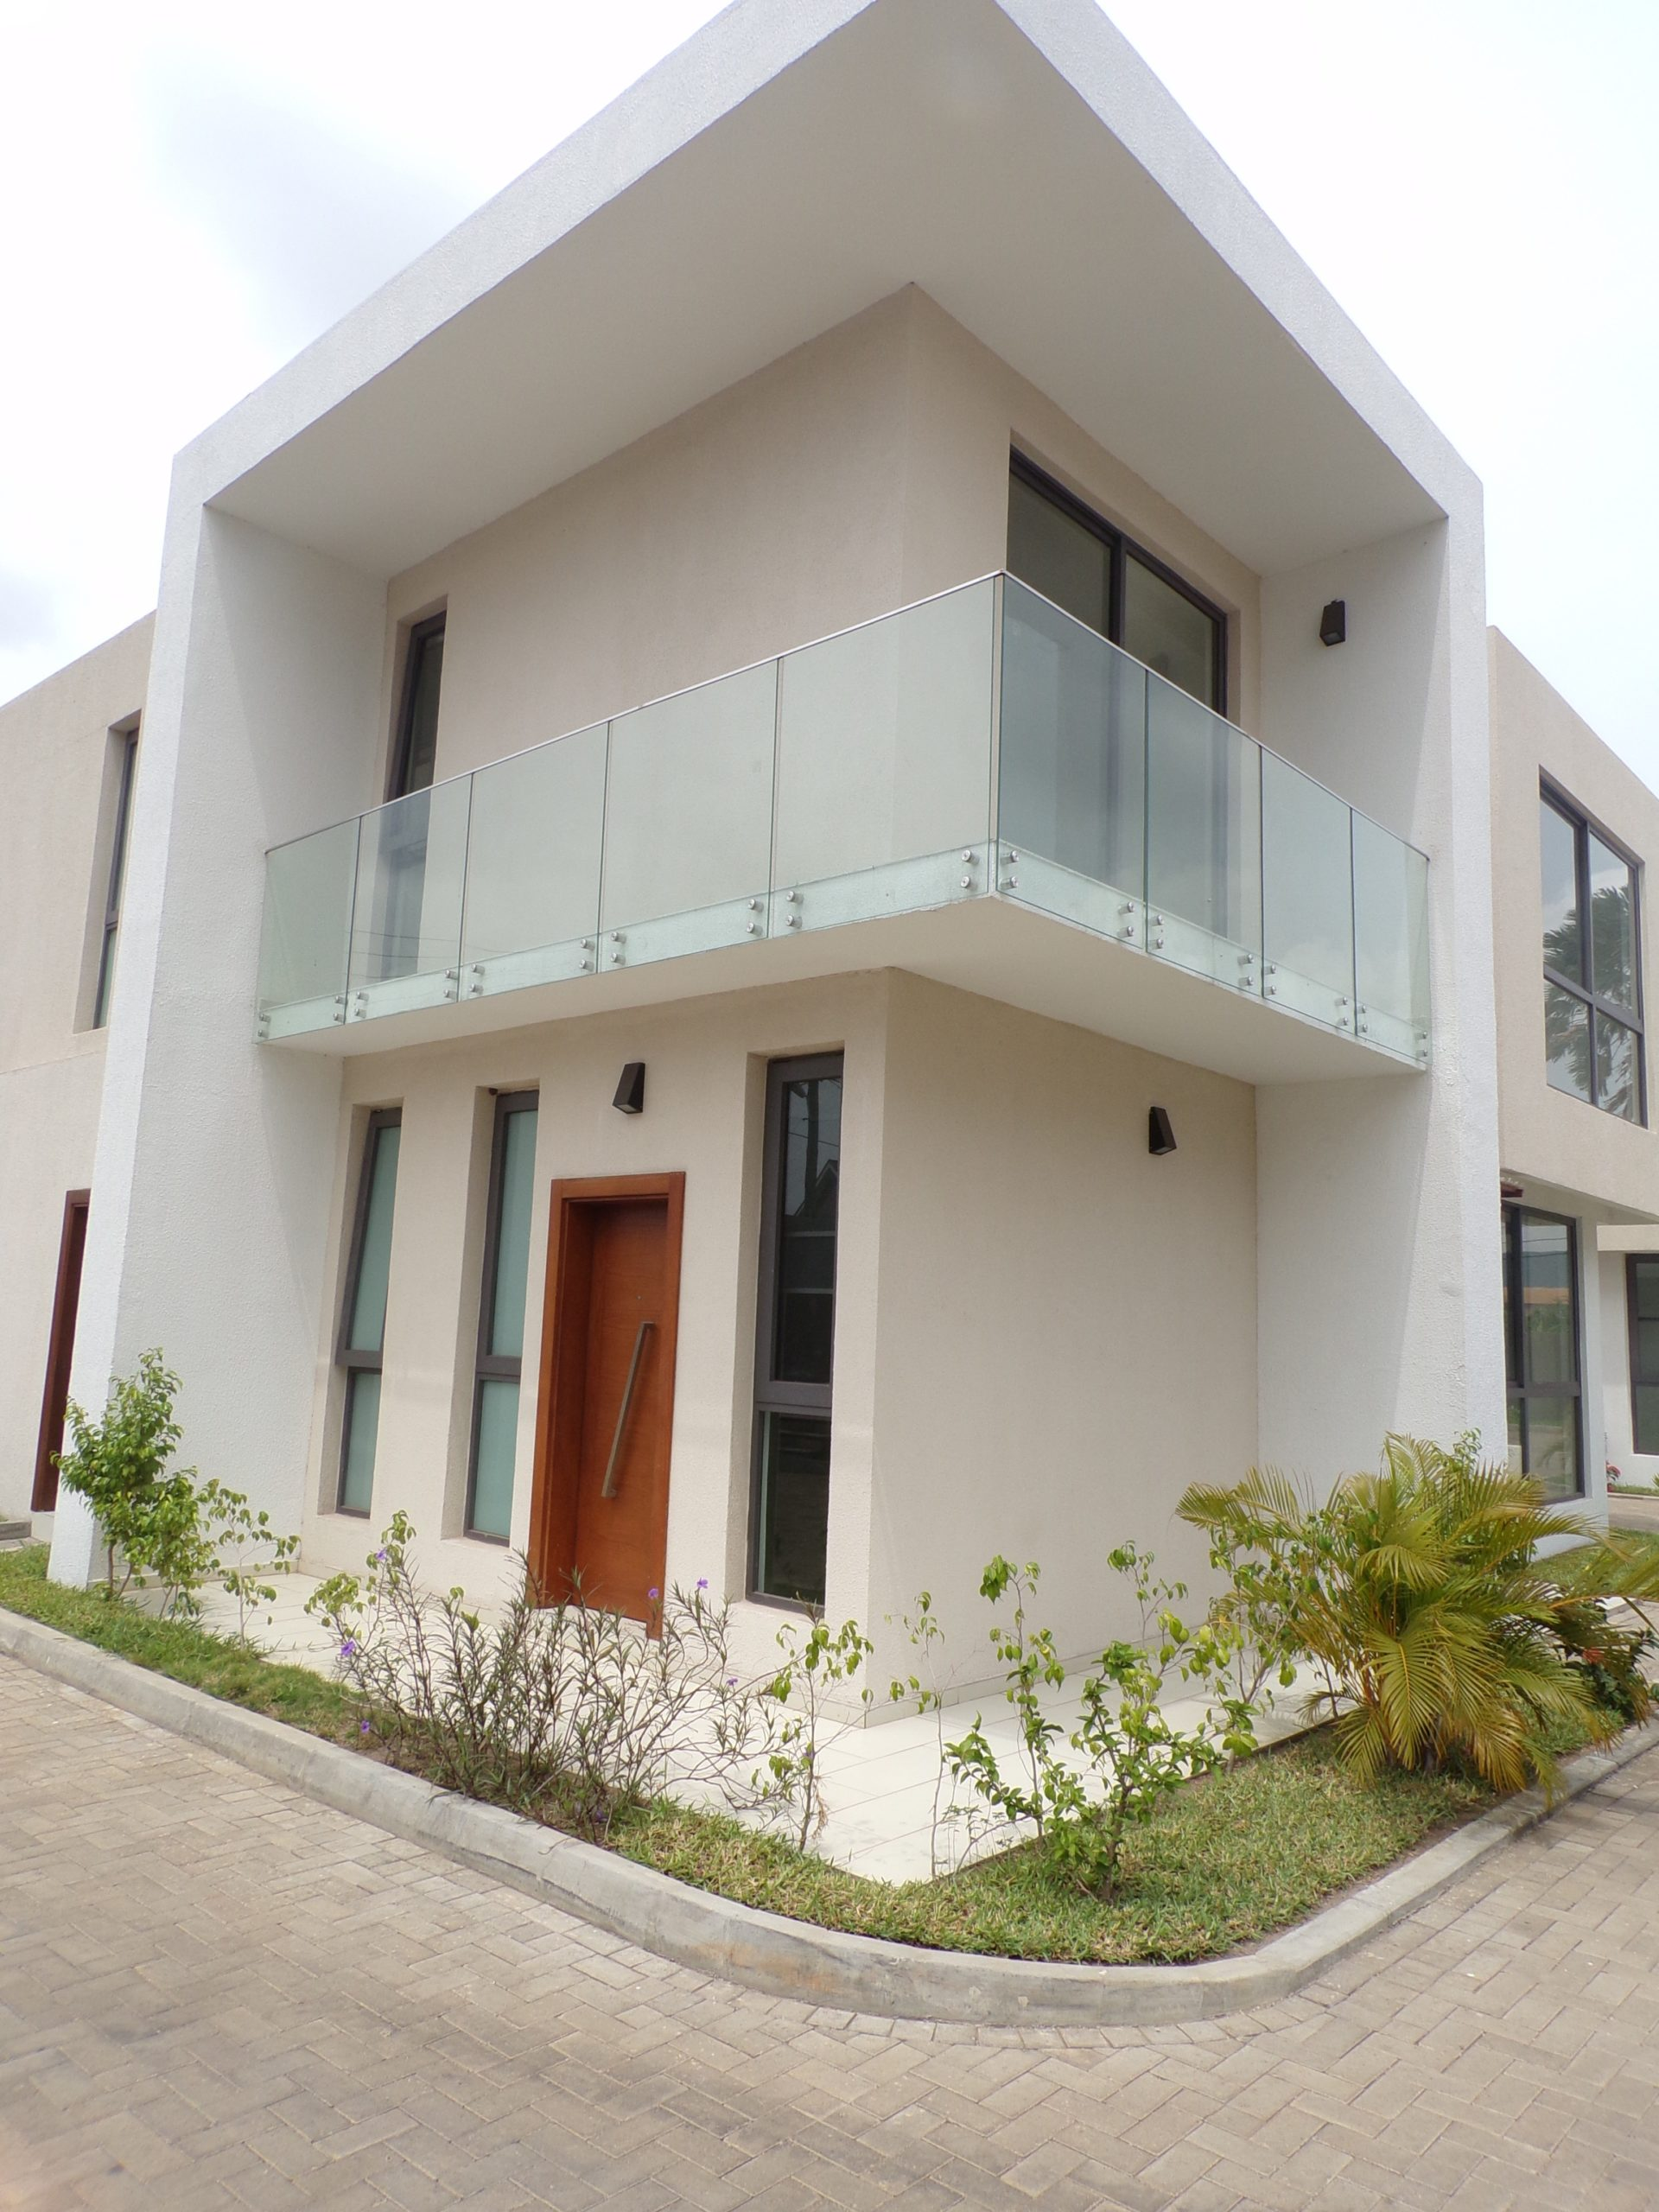 4 BEDROOM TOWNHOUSE FOR SALE AT ROMAN RIDGE